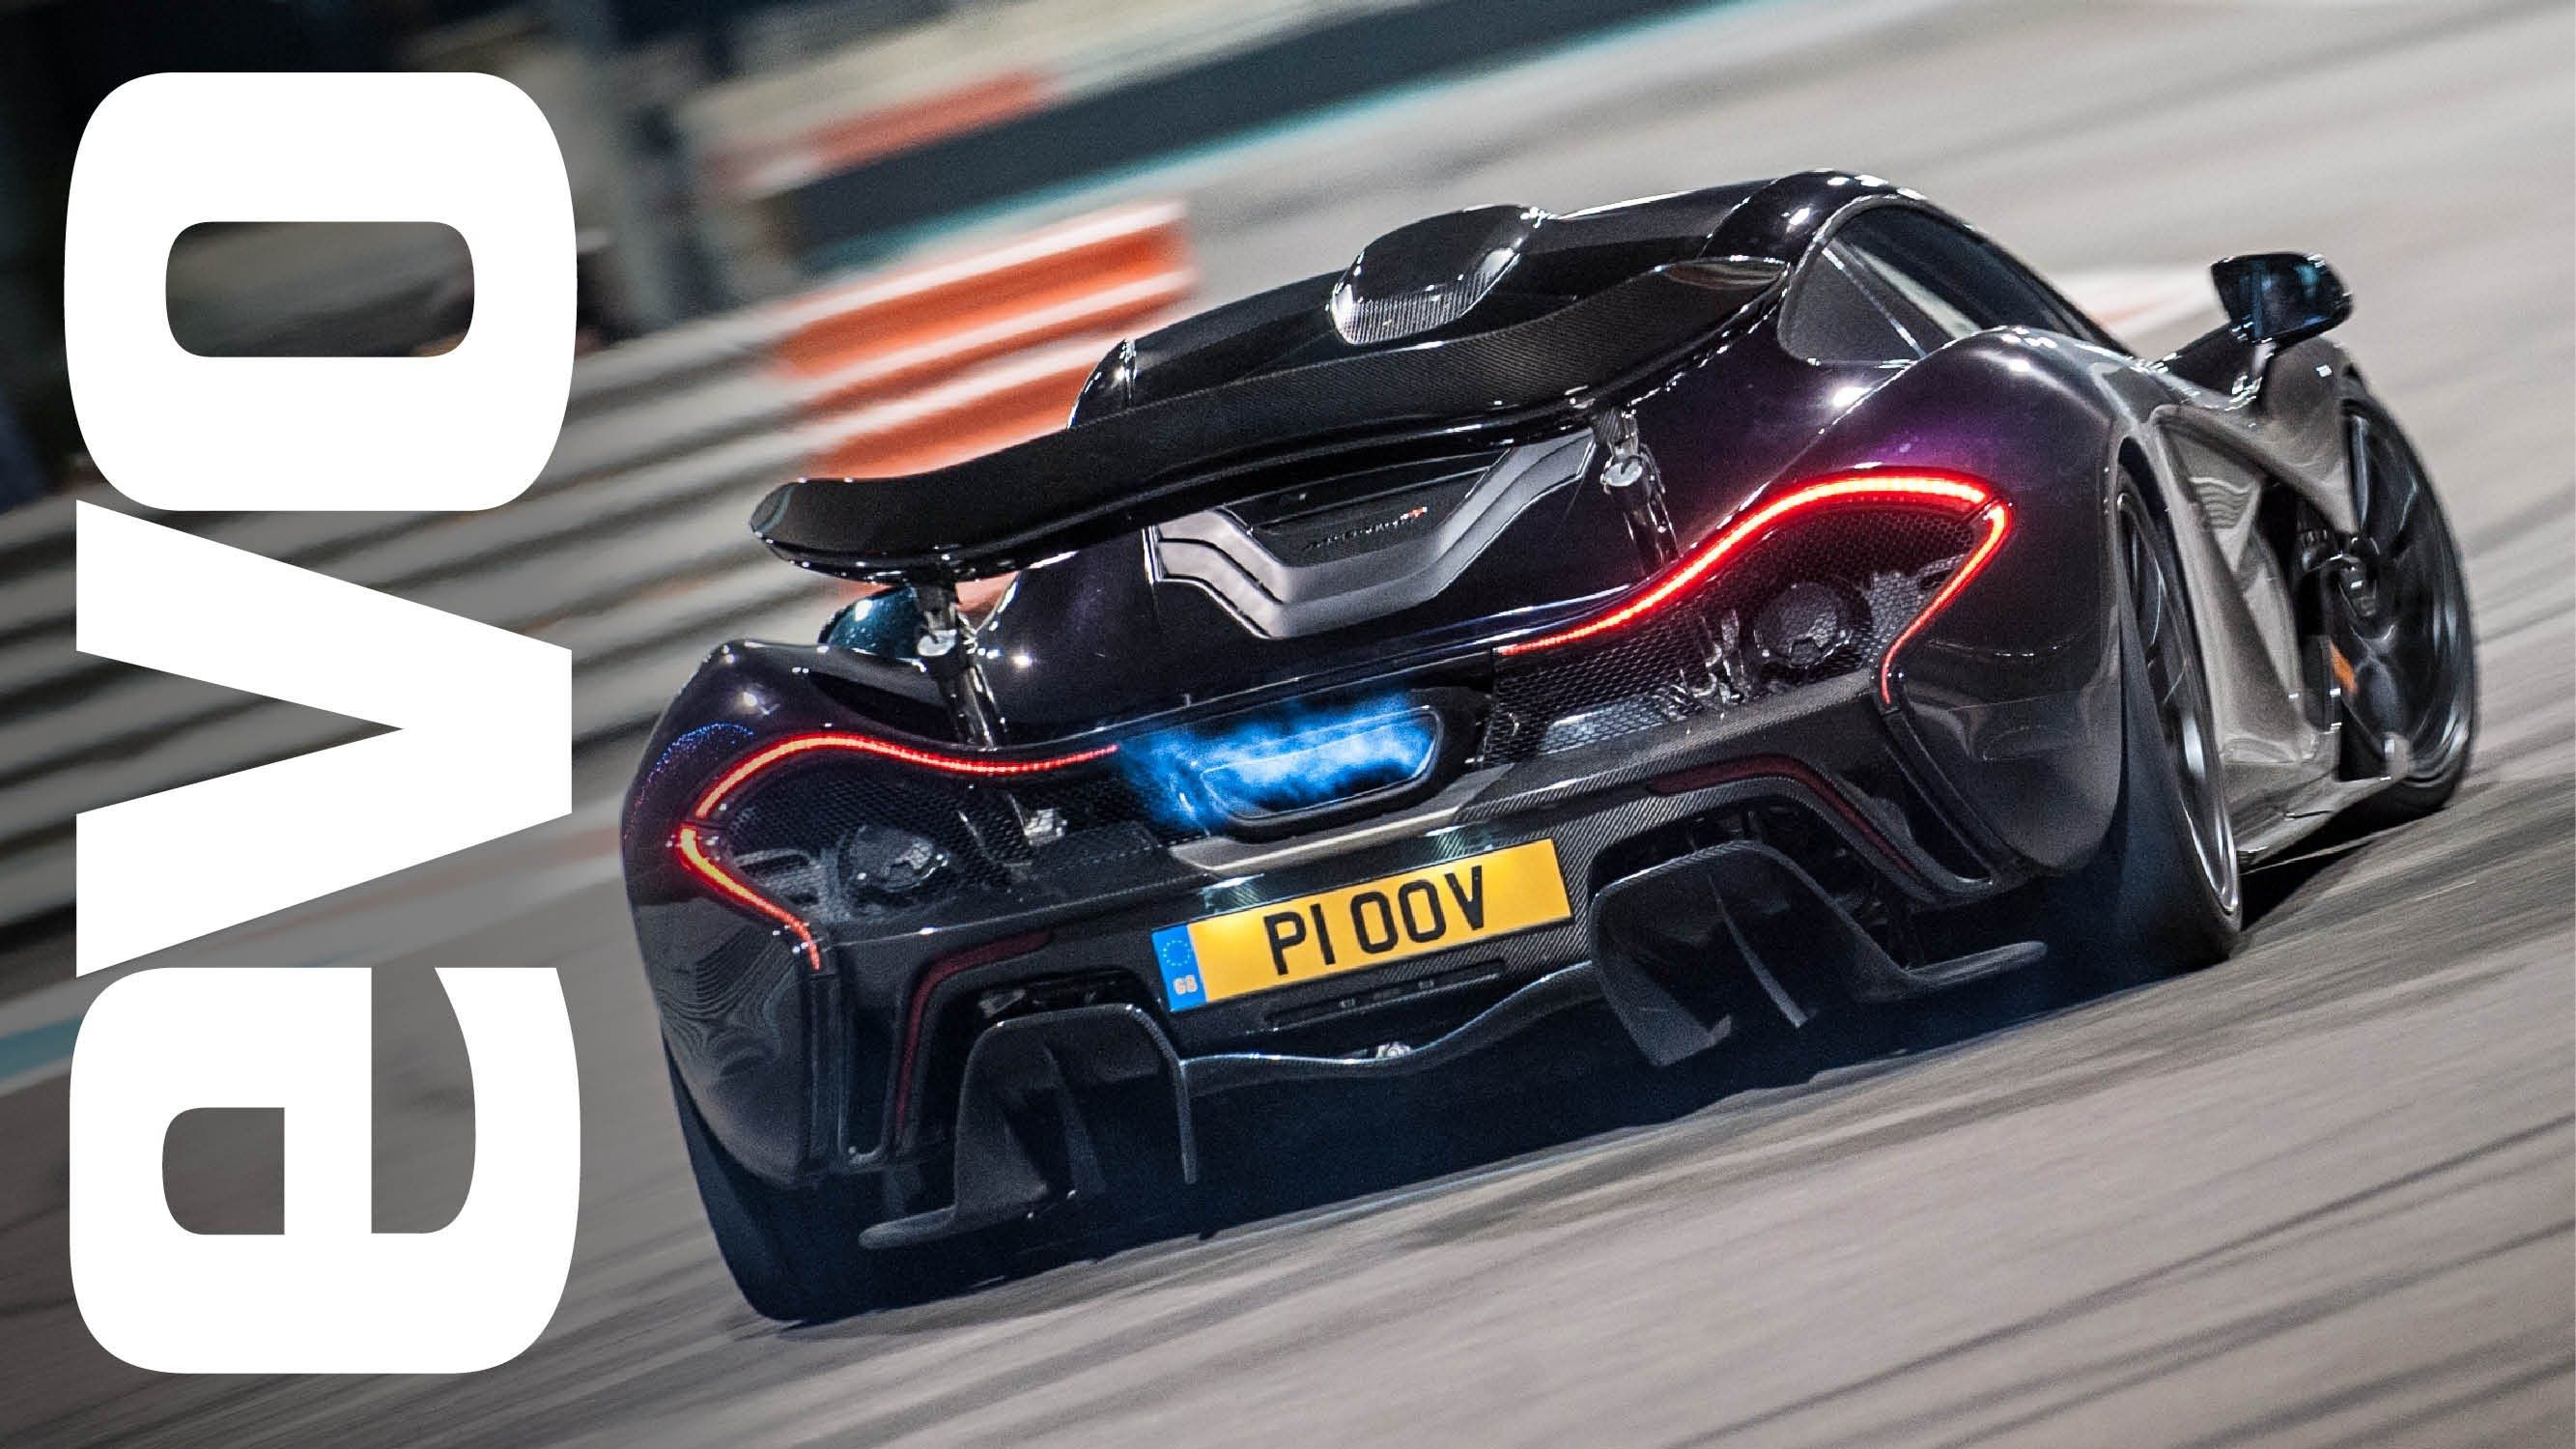 This Is Simply, One Of The Best Cars Ever. McLaren P1: Flames,